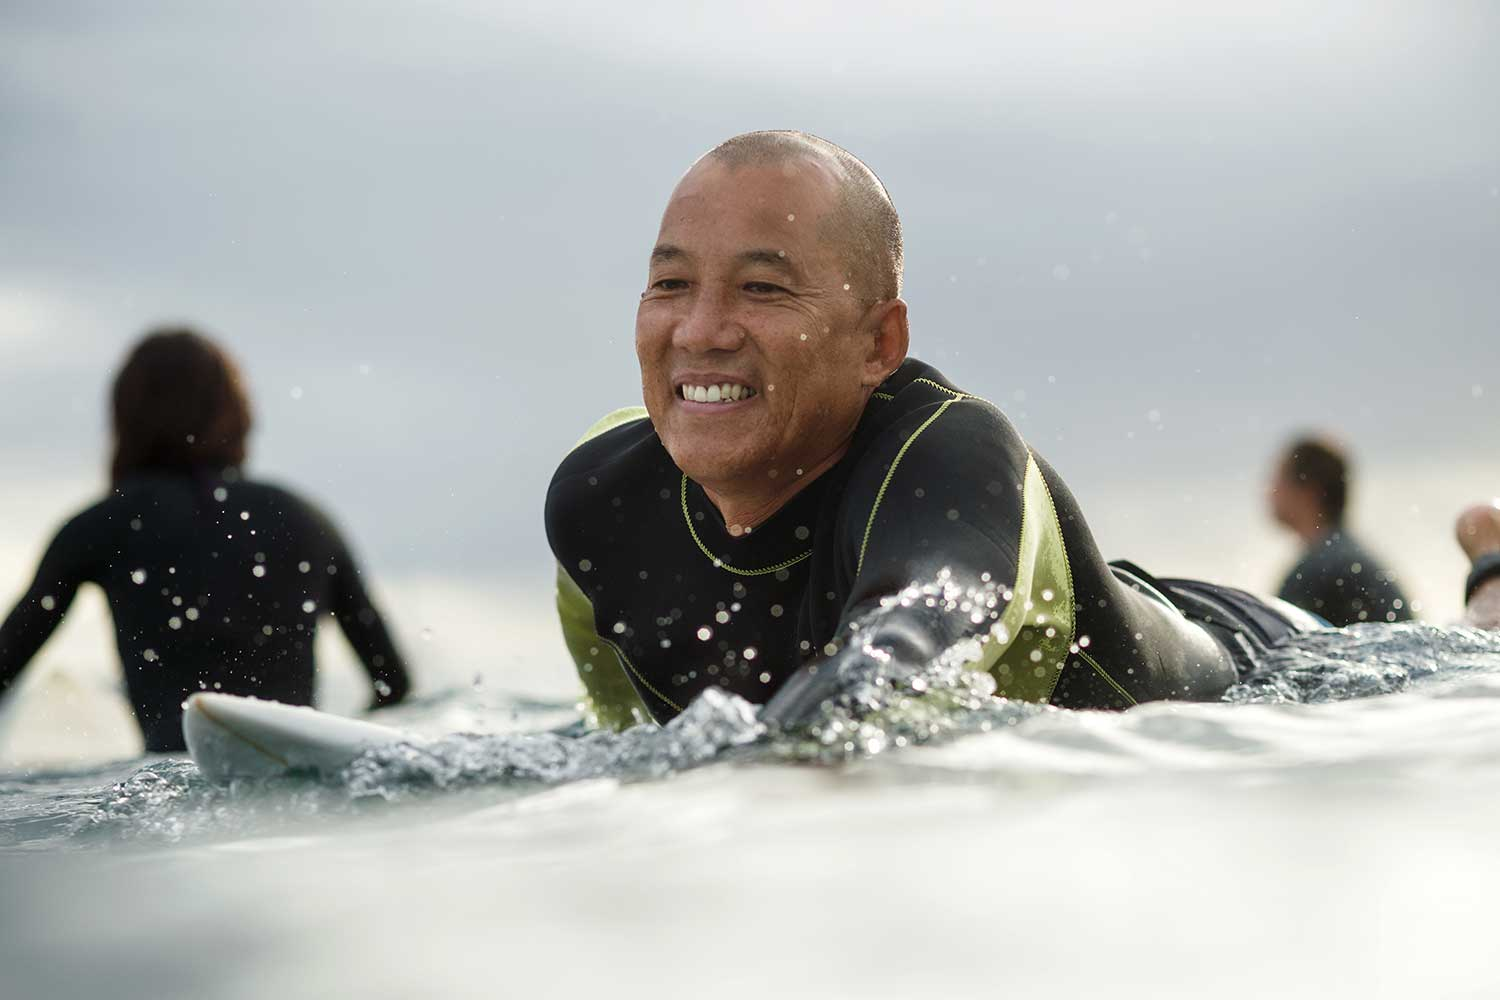 Guy Chang on surfboard in the ocean